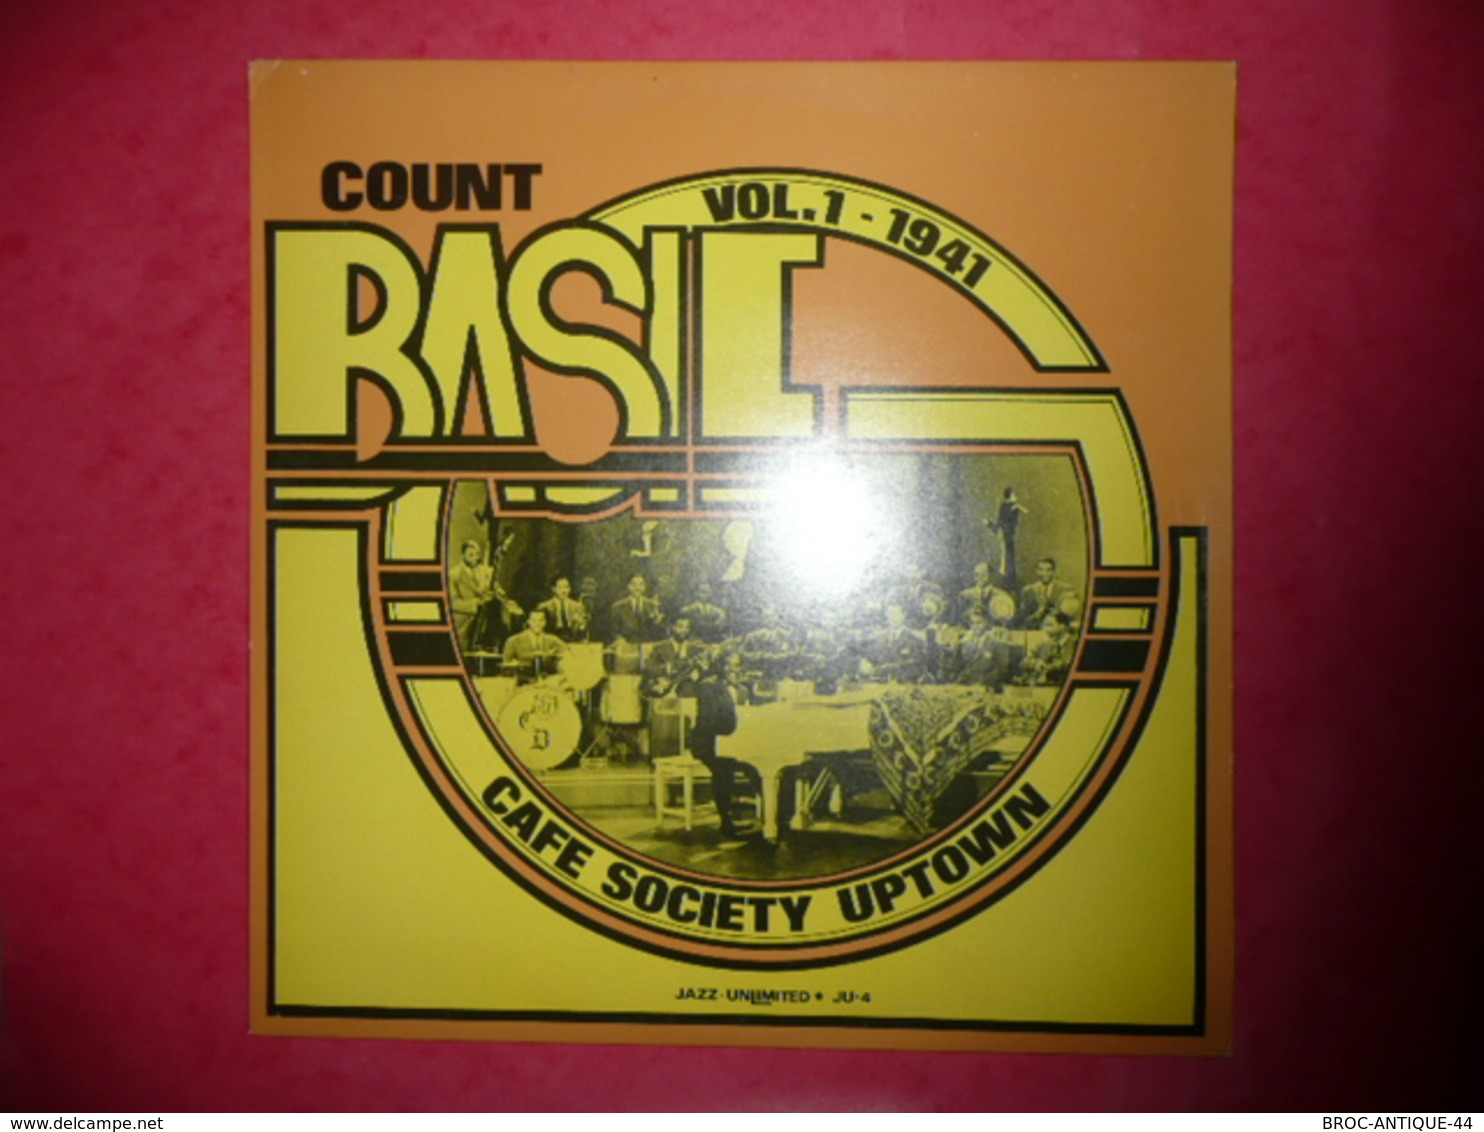 LP33 N°587 - COUNT BASIE - CAFE SOCIETY UPTOWN - VOL.1 - 1941 - COMPILATION 14 TITRES - Jazz